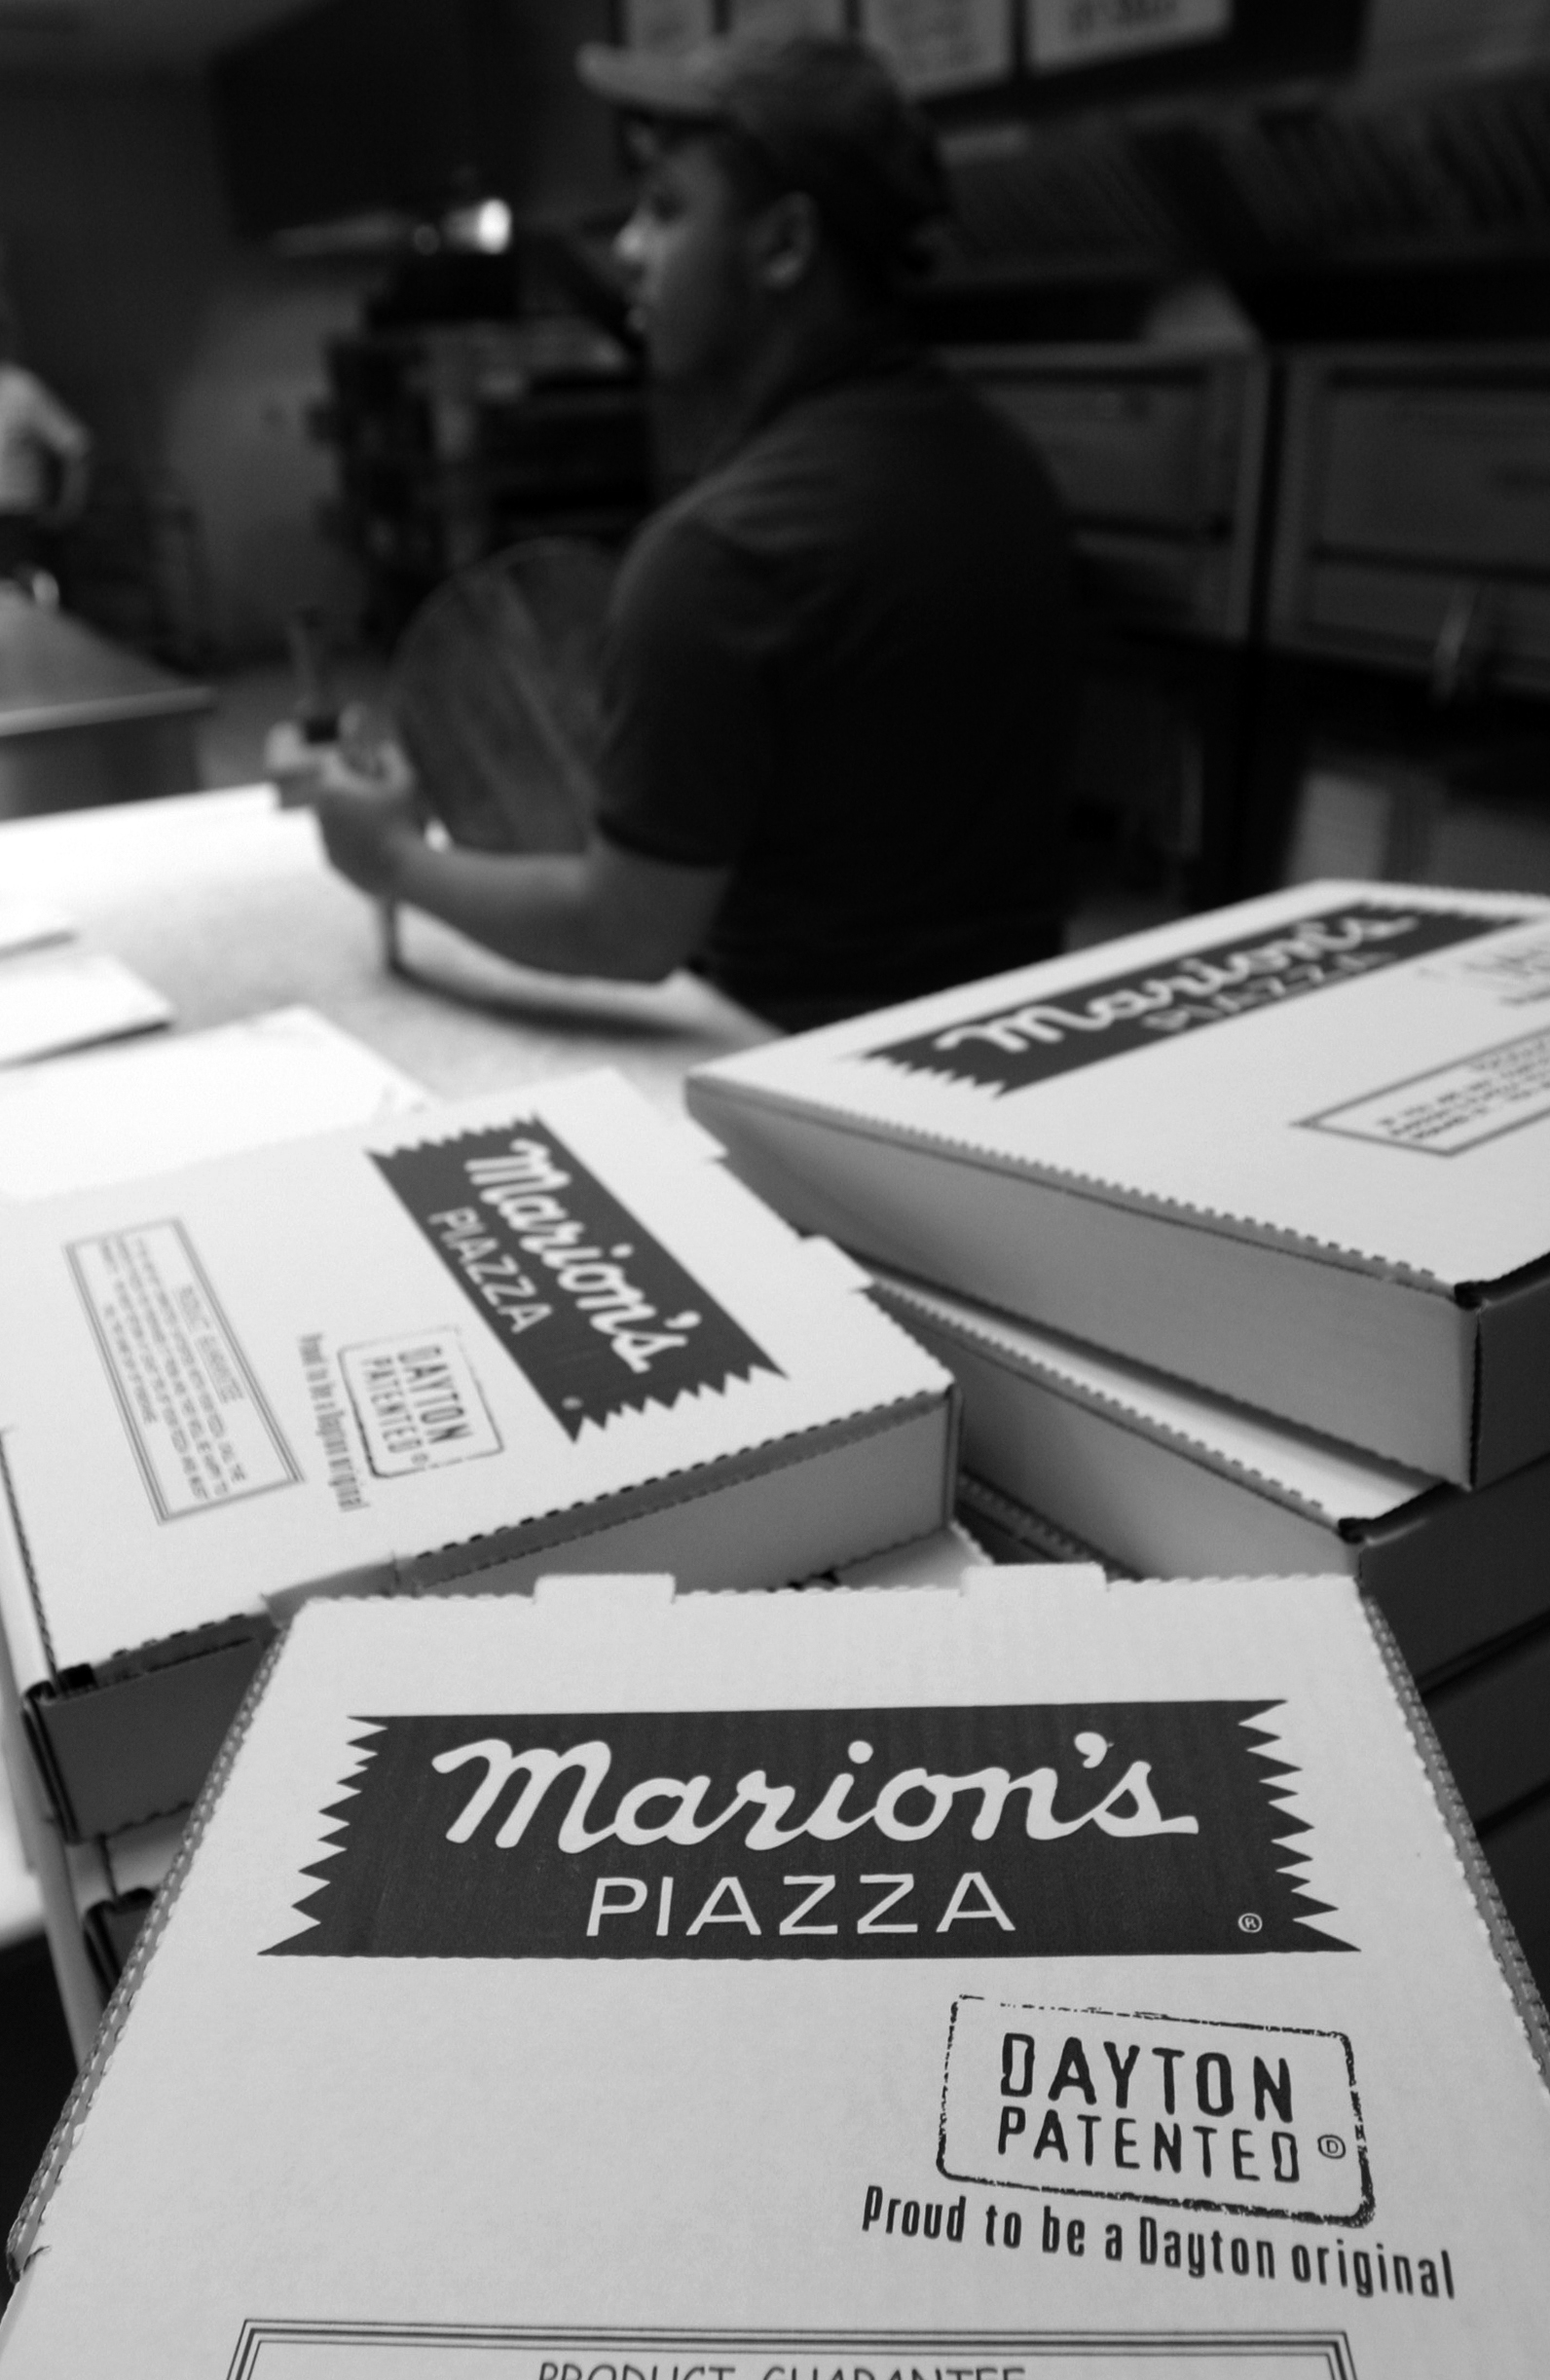 Marion's Piazza: Story behind Dayton Ohio's famous square-cut pizza